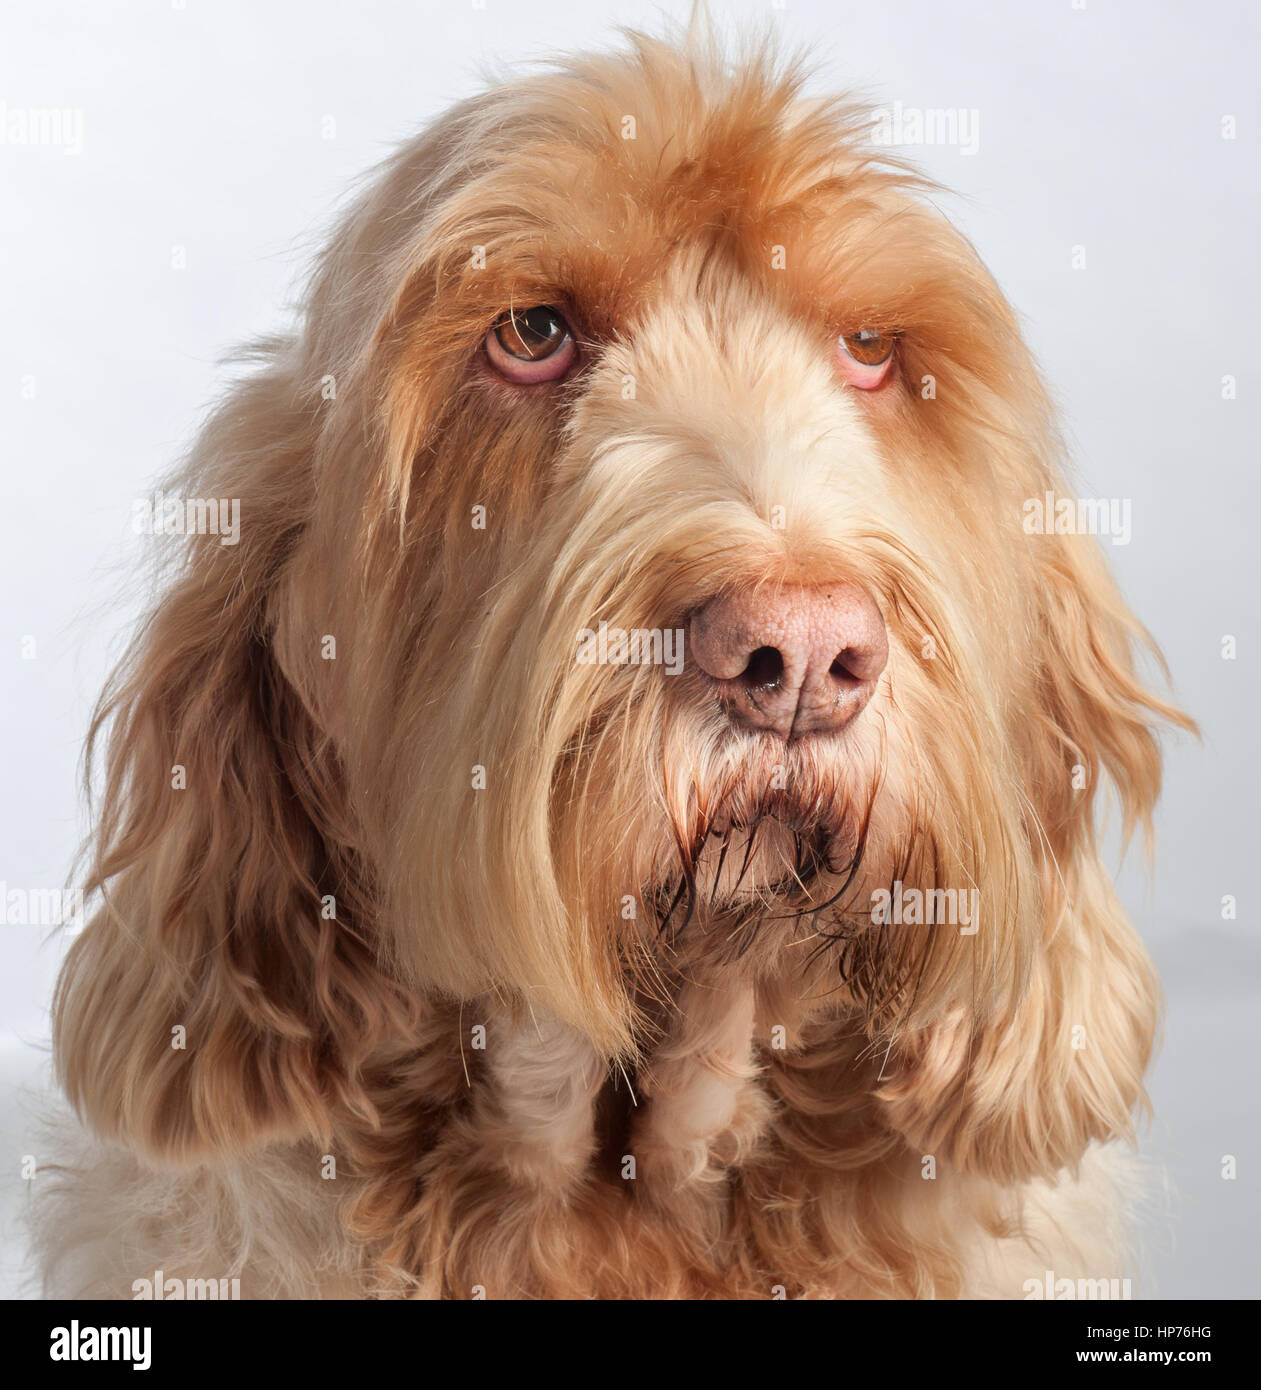 Image of italian spinone brown roan young puppy blue sitting cute - Spinone Dog Portrait Stock Image